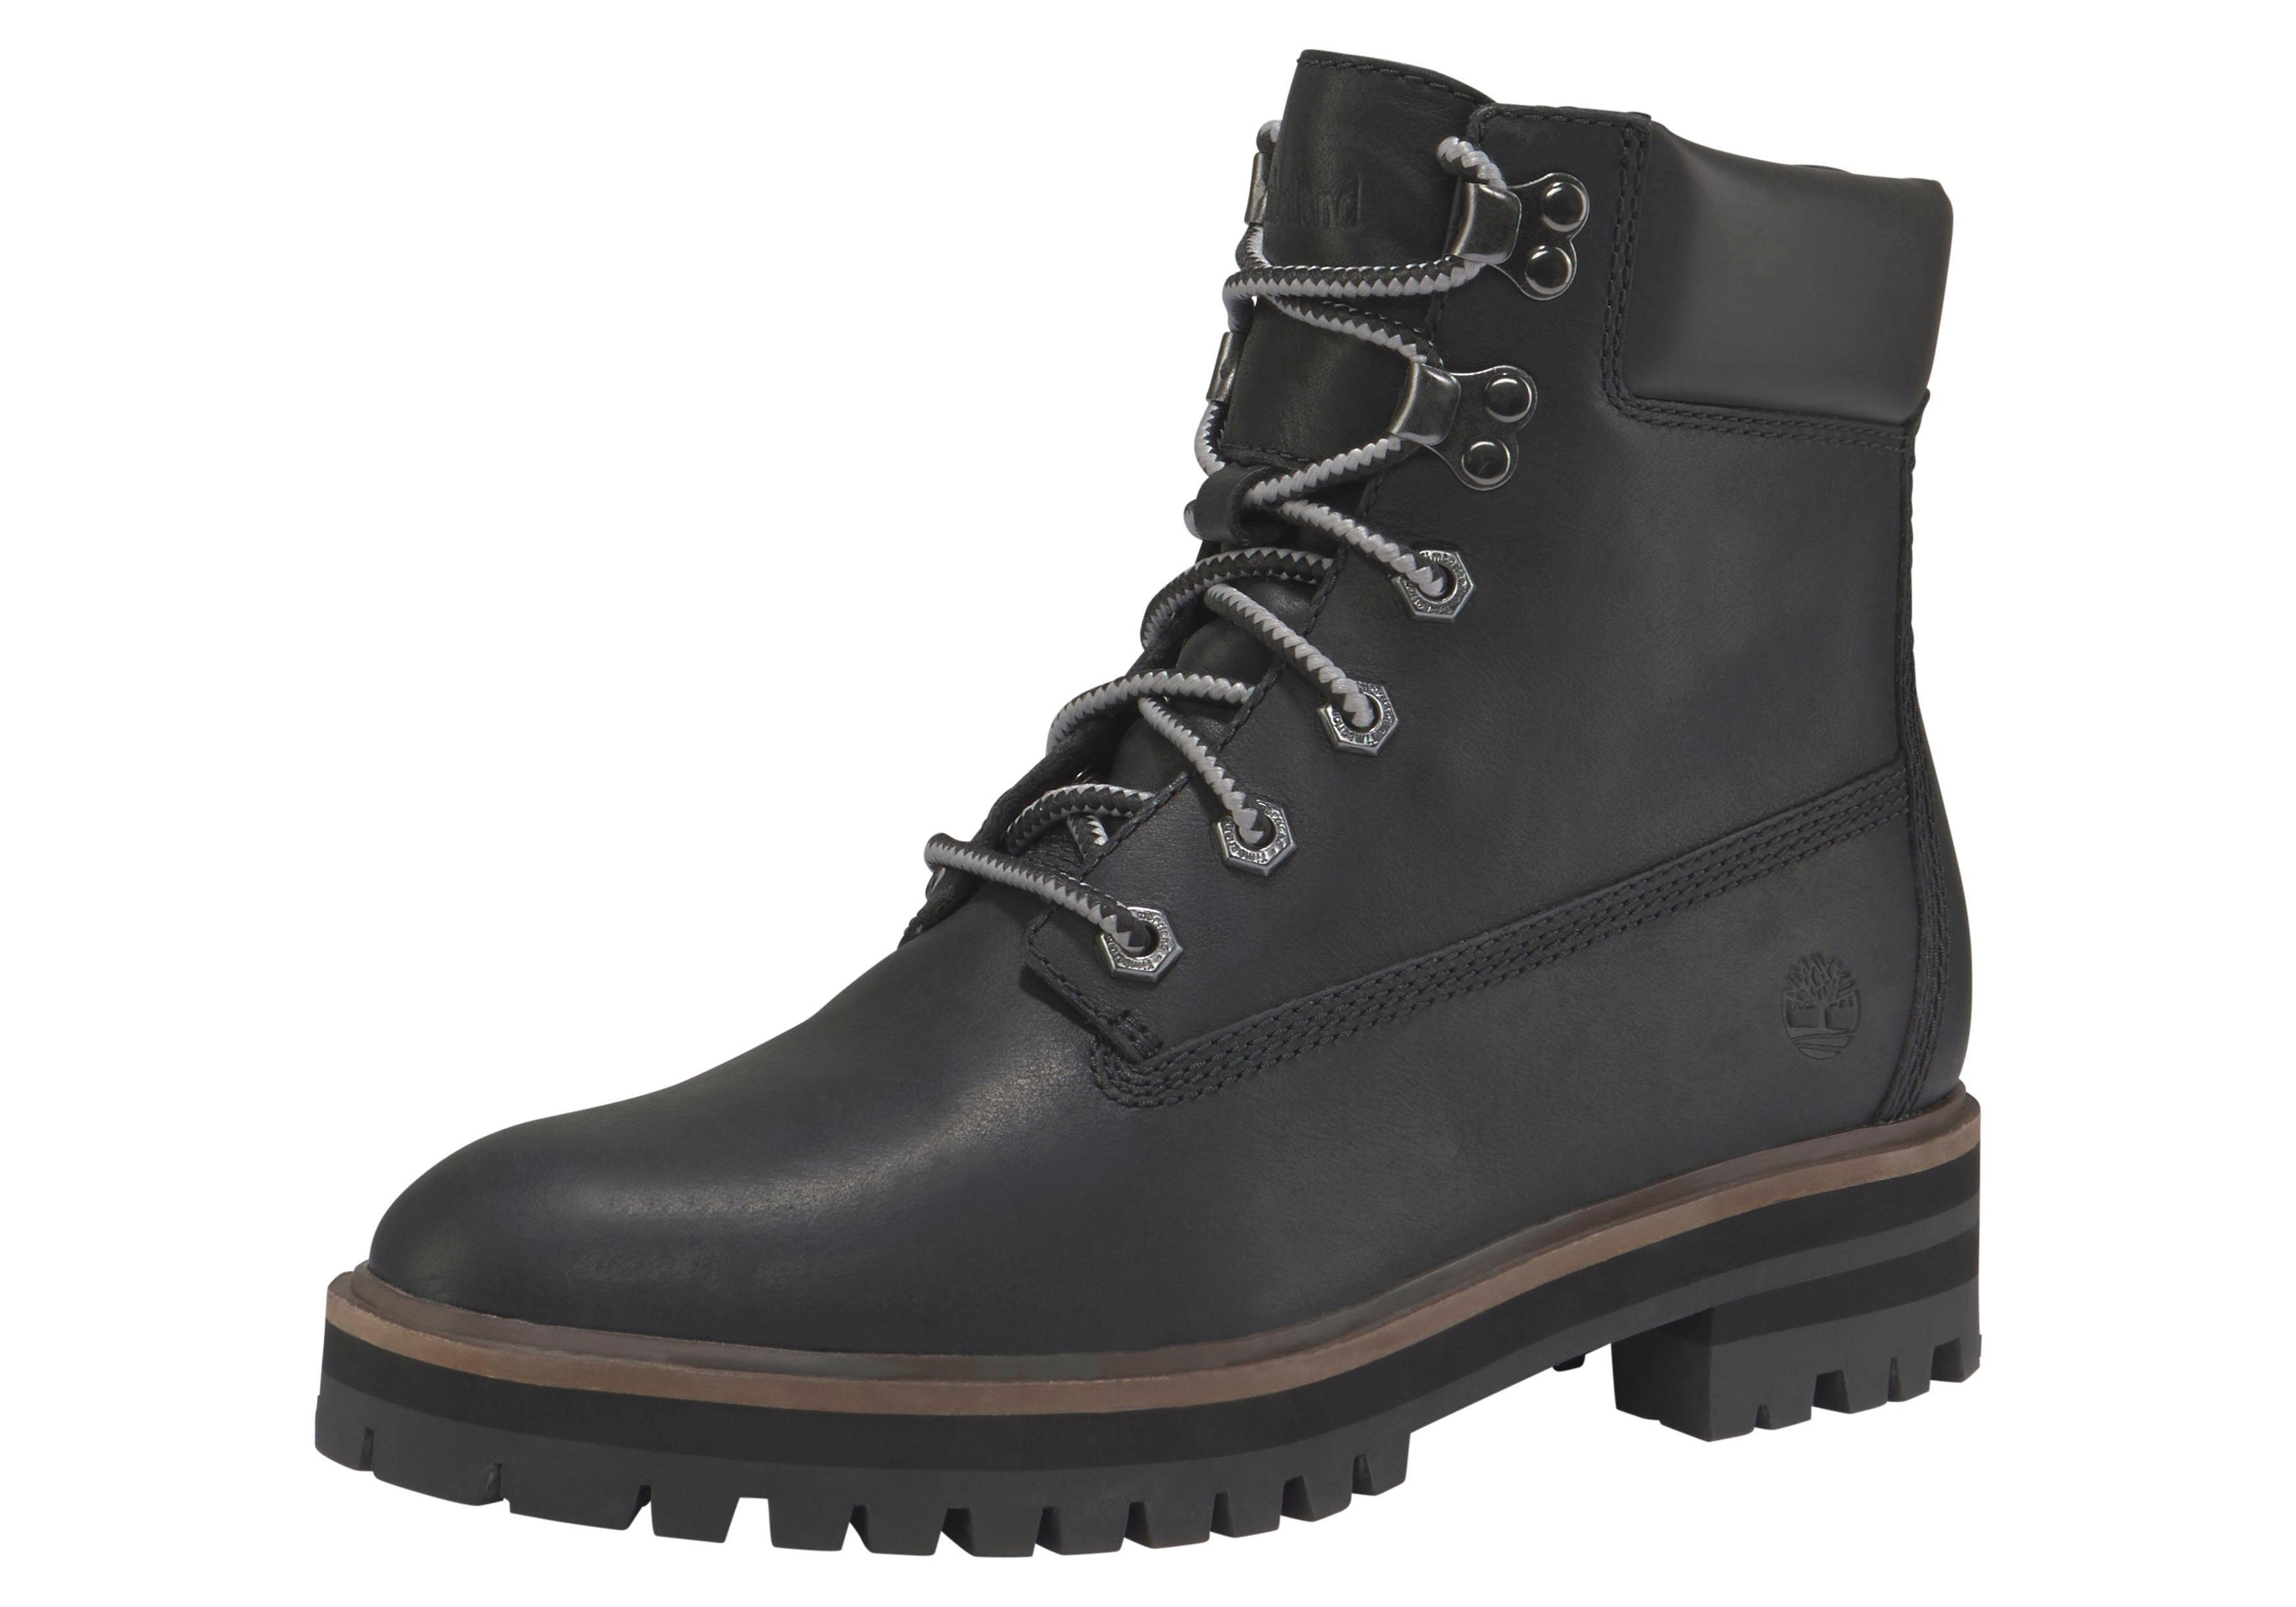 Timberland »London Square 6 Inch« Schnürboots   OTTO